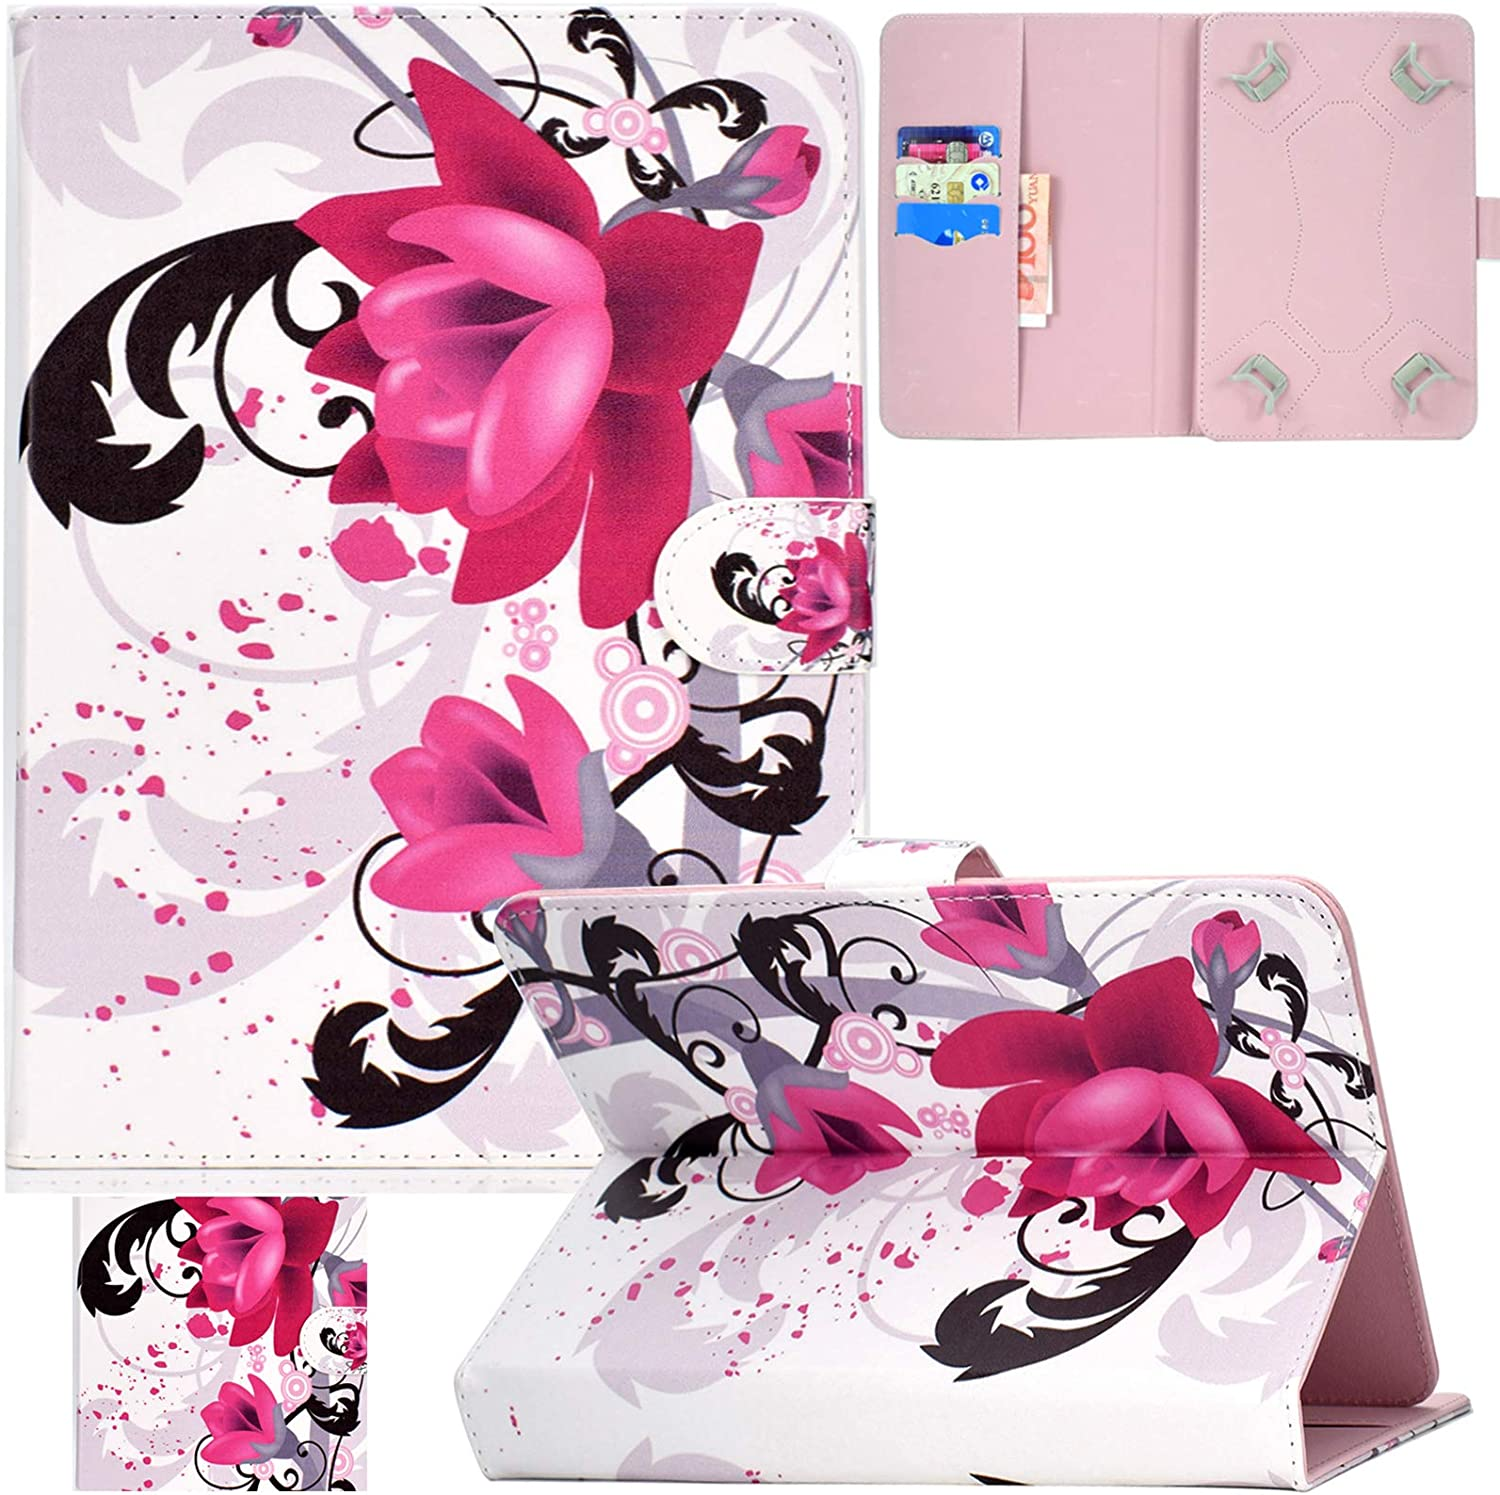 Universal 10.0 Tablet Case, Artyond PU Leather Folio Stand Card Slot Case for iPad 9.7 2018 2017/ iPad Air 1 2/ Galaxy Tab A 10.1/ Tab E 9.6/ Fire HD 10/ and More 9.0-10.5 inch Tablet (Purple Orchids)